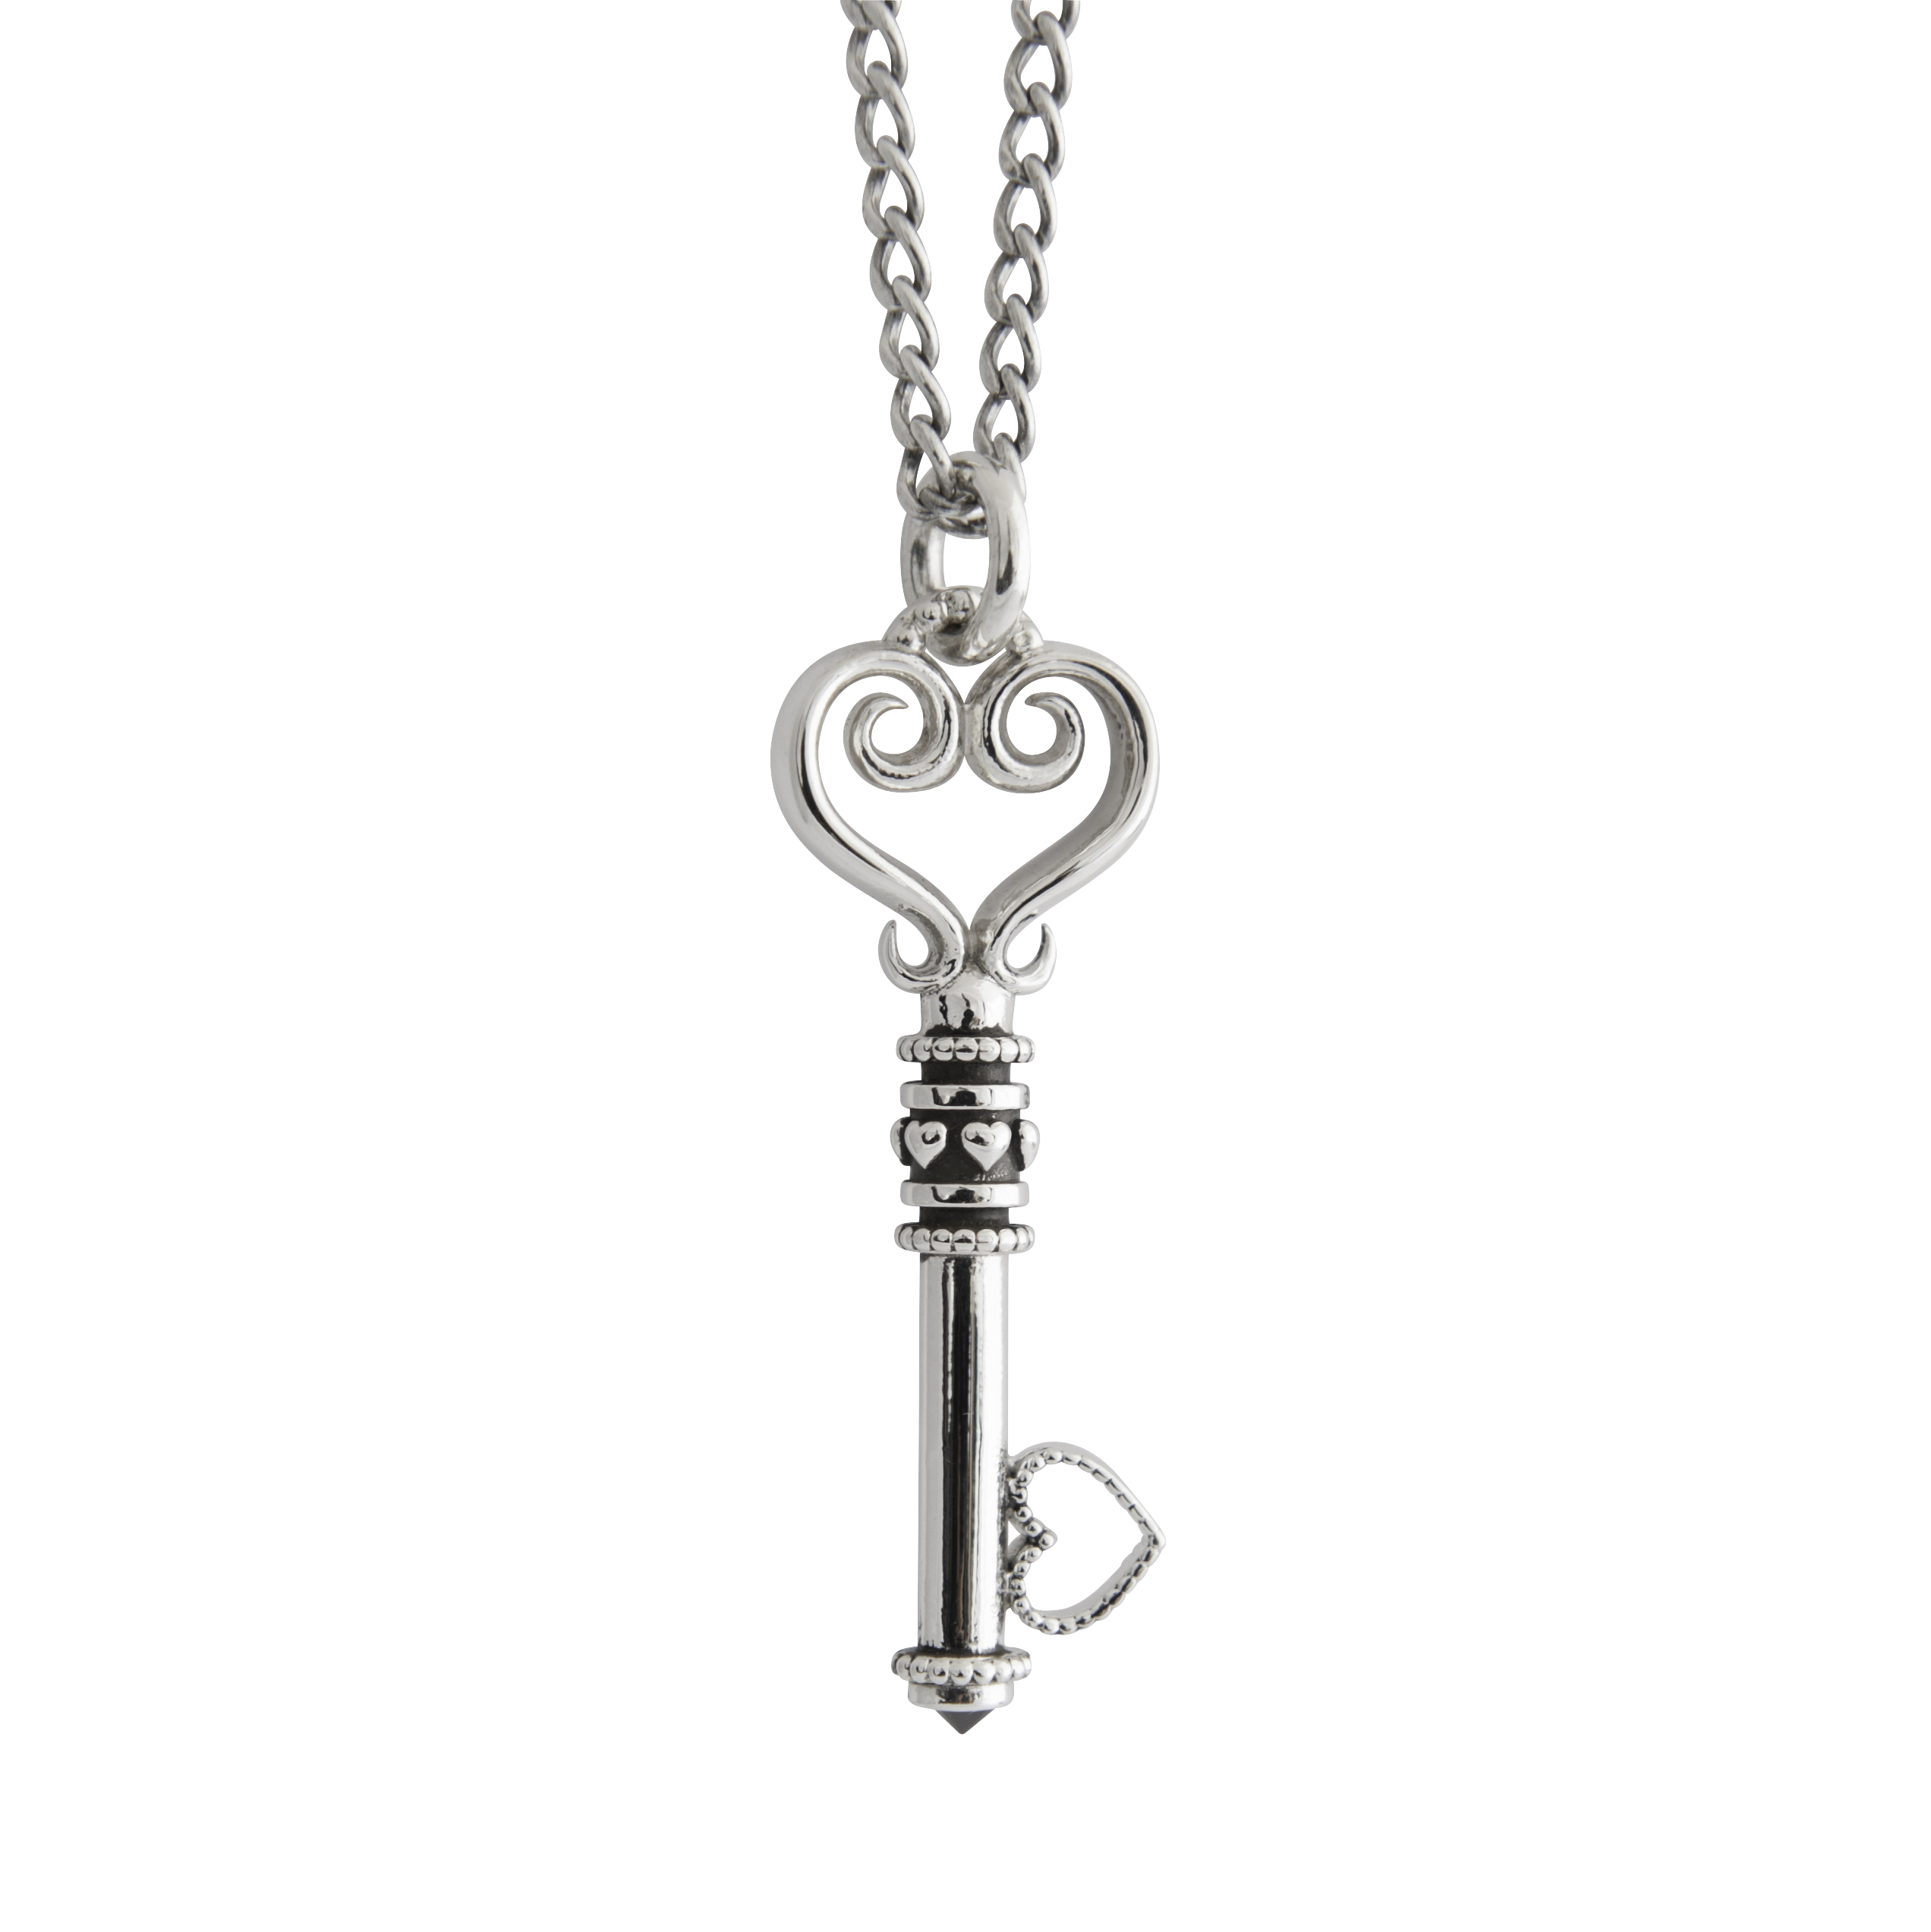 Heart and key clipart clip transparent library Heart key Pendant PNG Image - PurePNG | Free transparent CC0 PNG ... clip transparent library